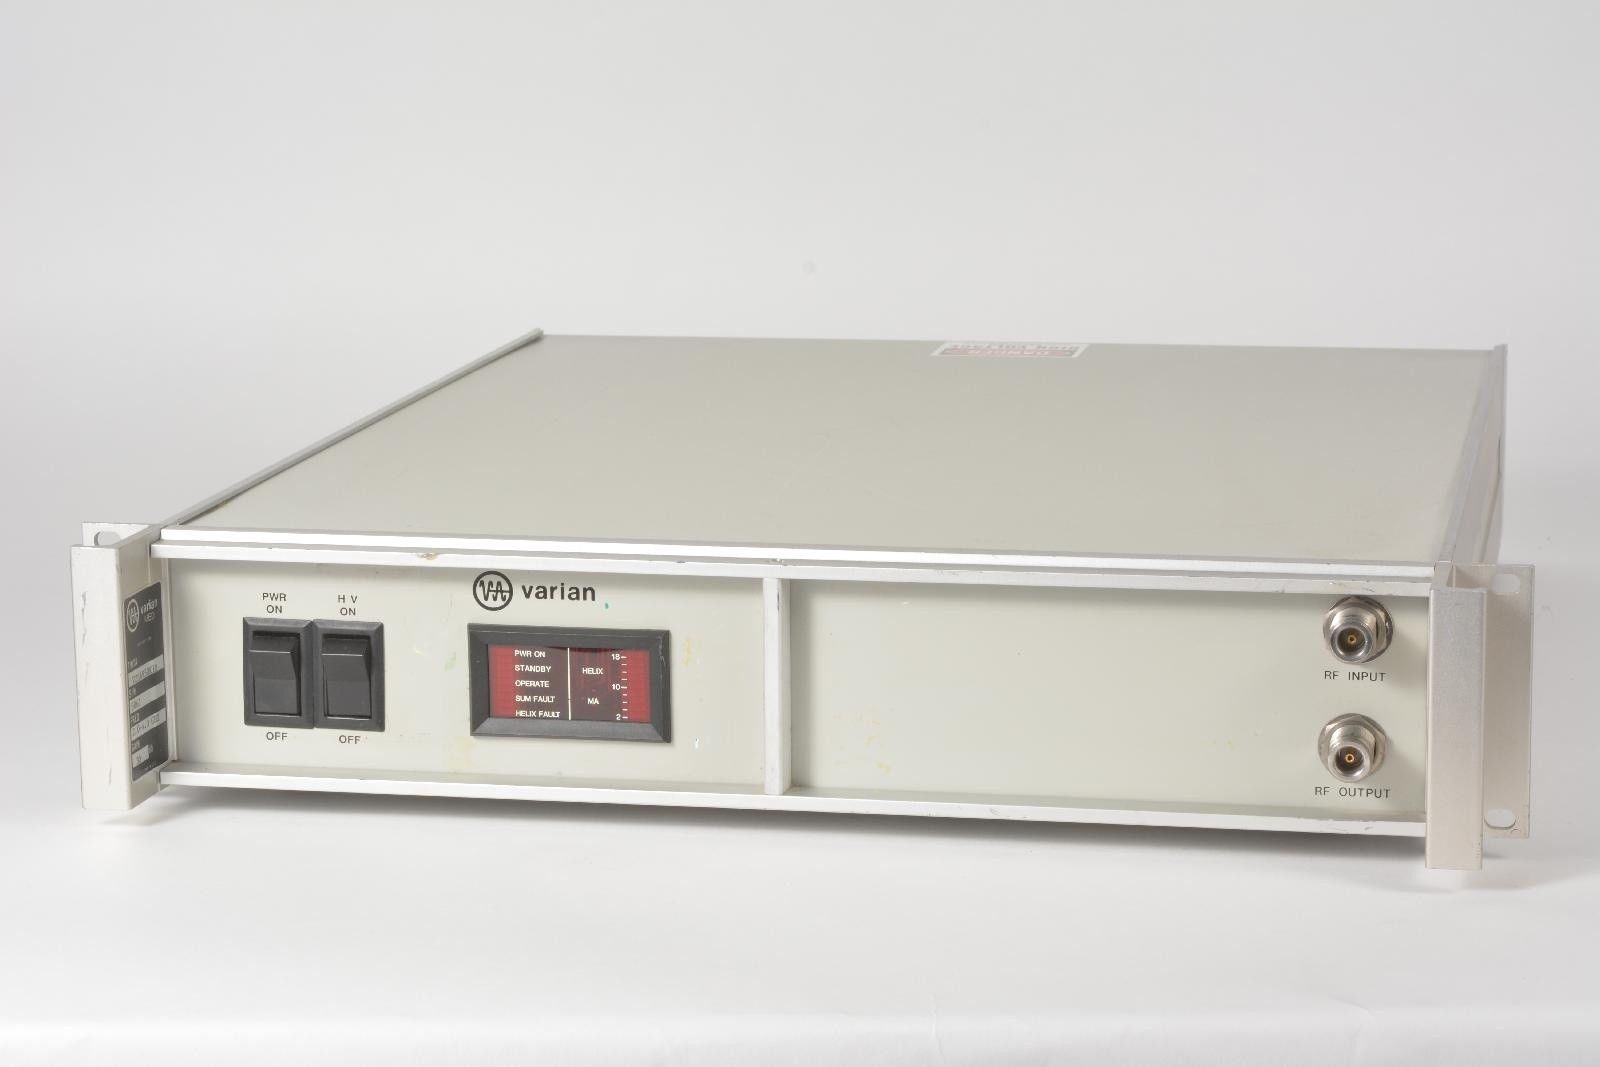 vstar-cpi-varian-twt-microwave-power-amplifier-2-0-4-0-ghz-used-equipment-for-sale-0.jpg